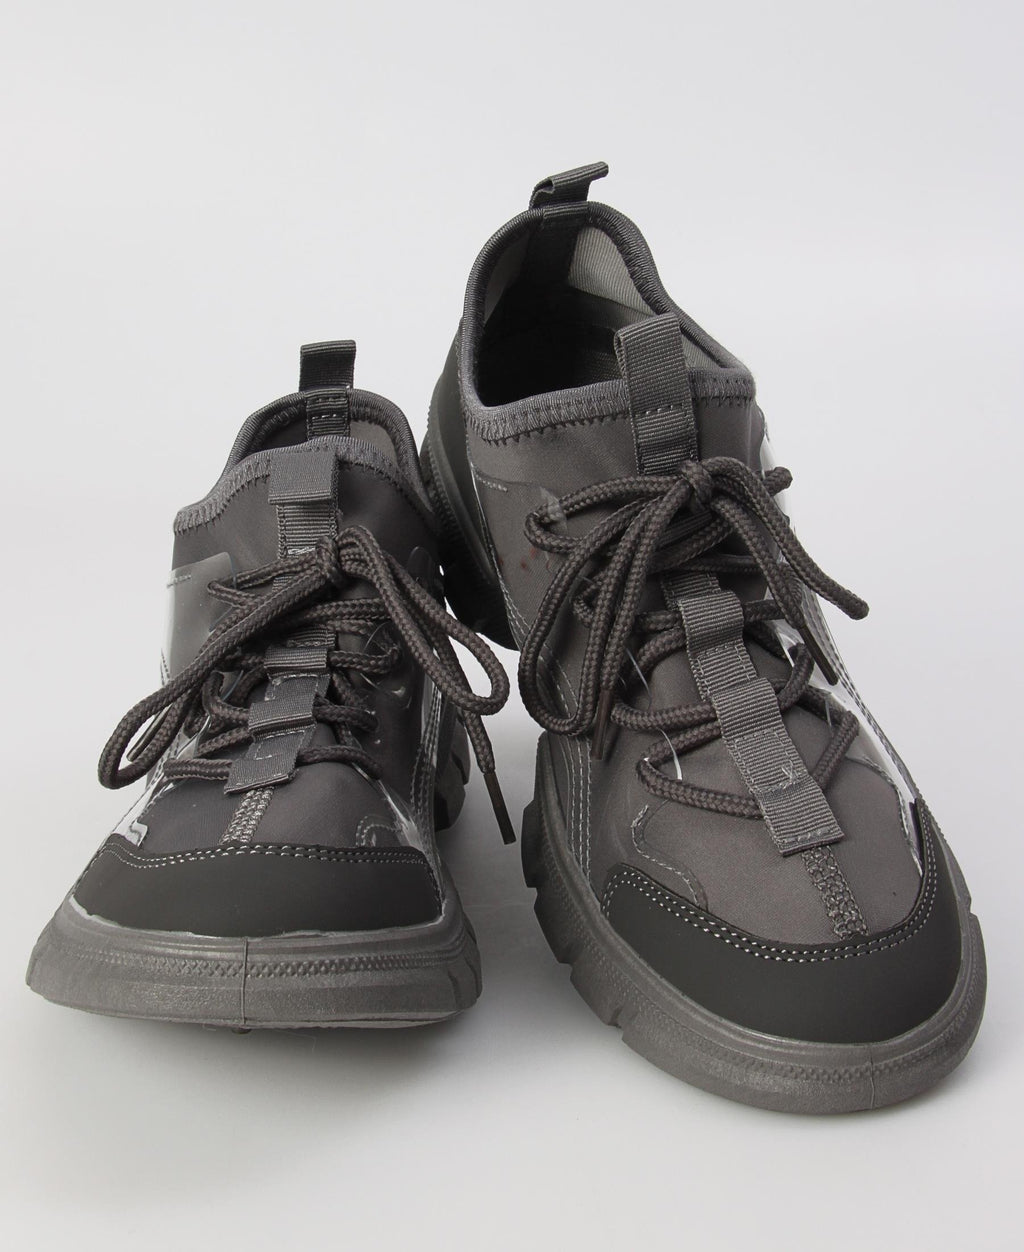 Ladies Grey Rush Sneakers - Boots